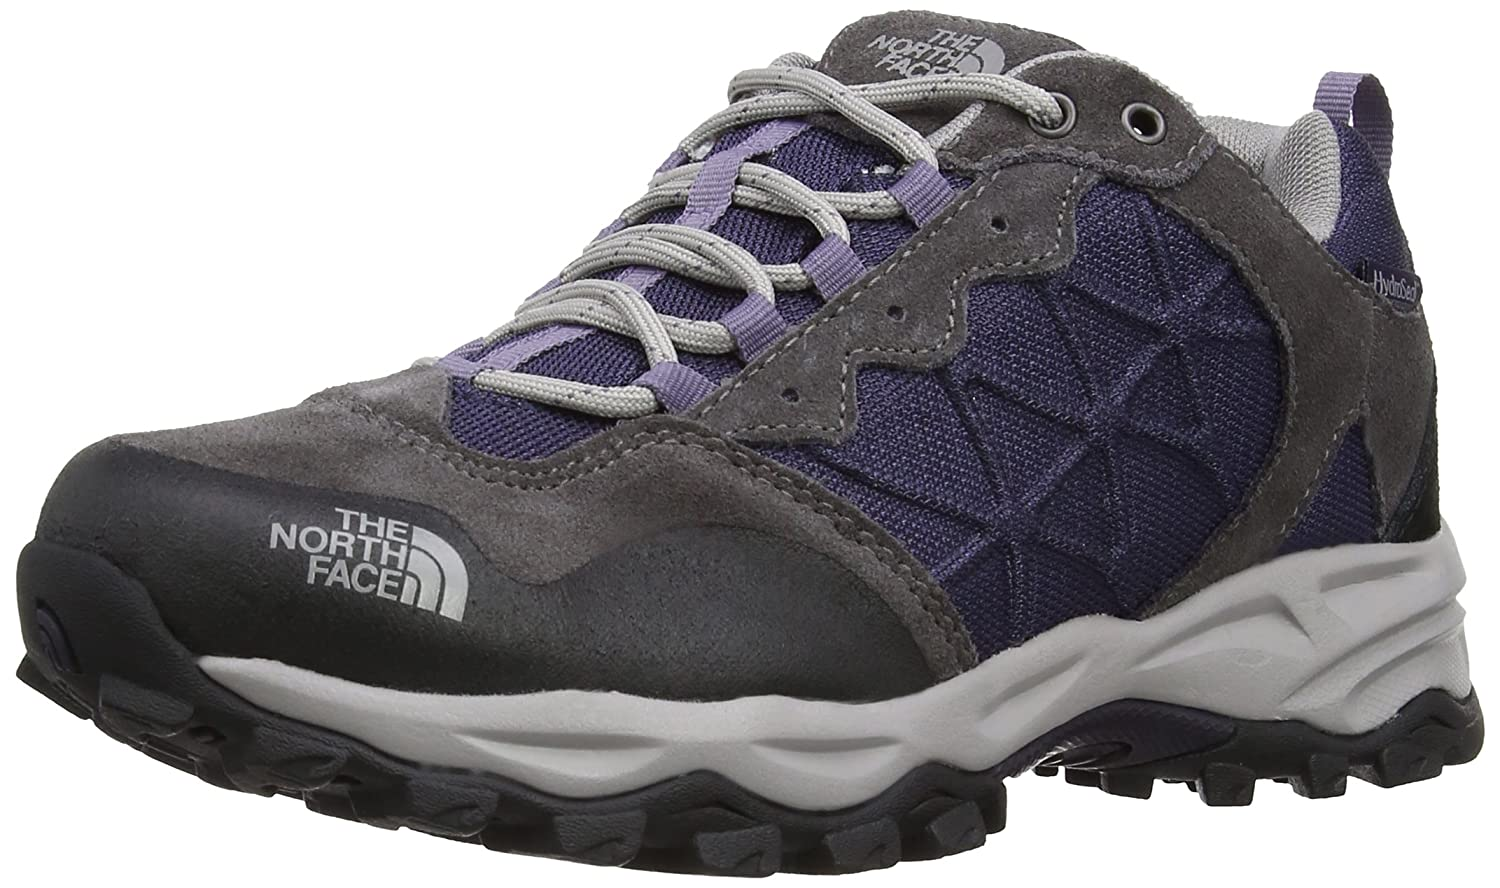 North Face W Storm WP (EU), Zapatillas de senderismo, Unisex adulto The North Face